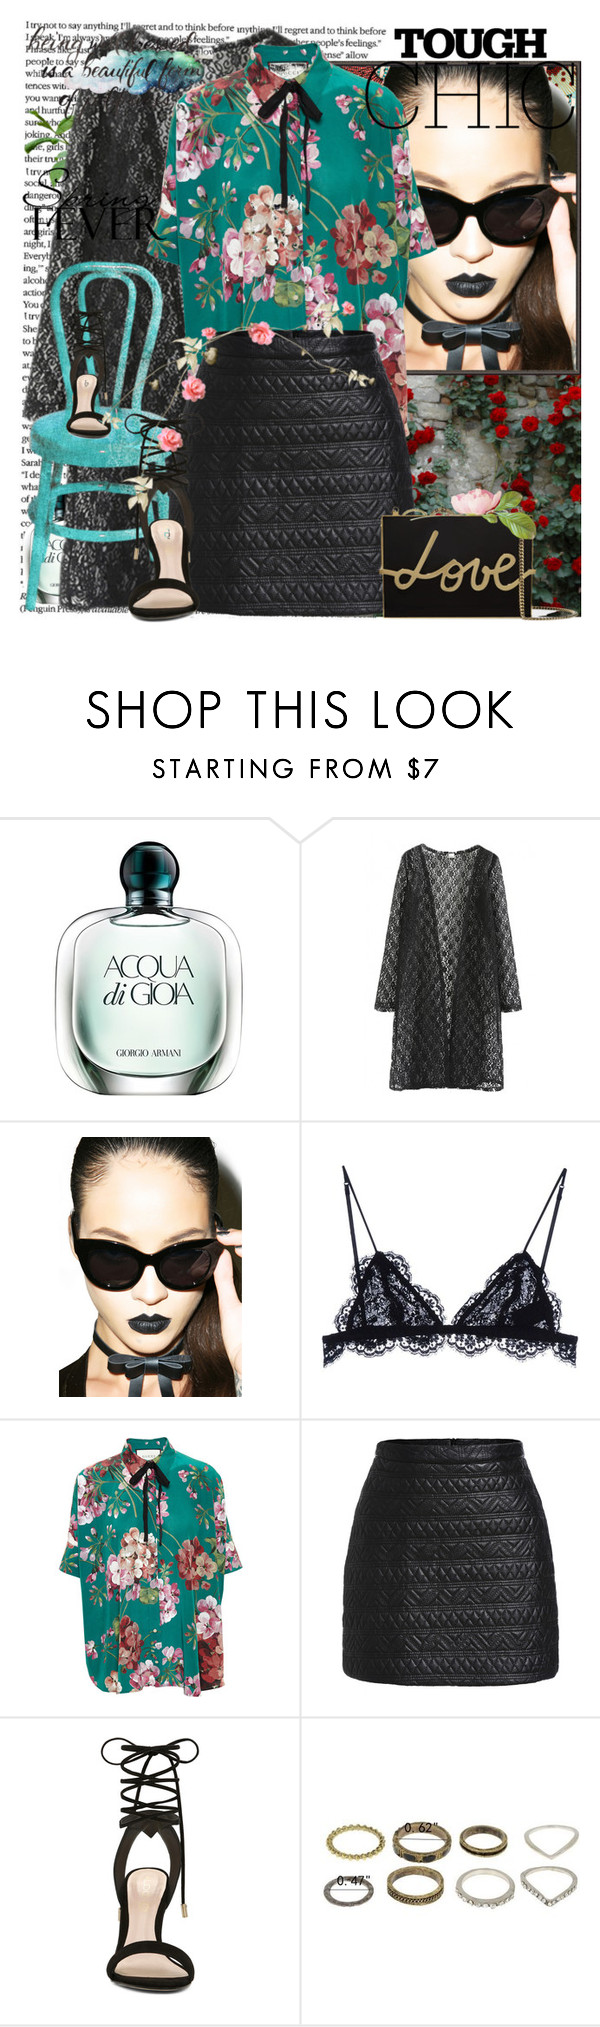 """""""In the Spring!"""" by hennie-henne ❤ liked on Polyvore featuring Giorgio Armani, WithChic, Cotton Candy, Bellagio, Cheap Monday, Isabel Marant, Gucci, ALDO and Lanvin"""